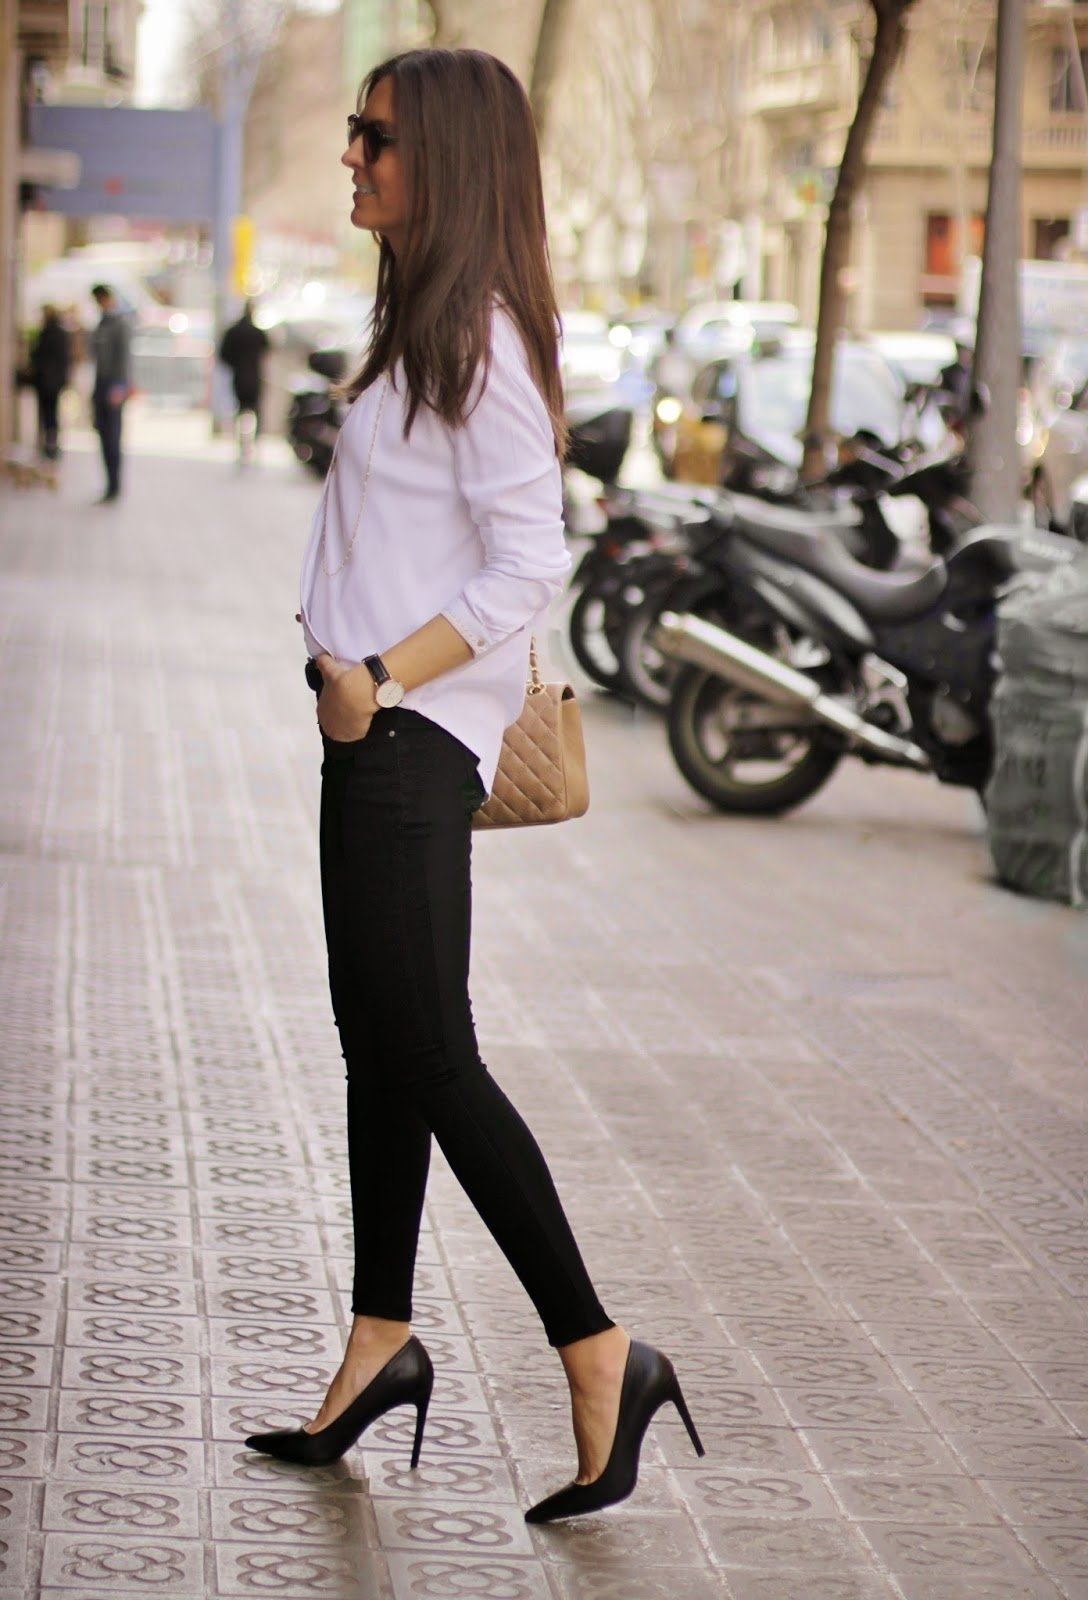 10 Unique Black And White Outfit Ideas black and white outfits just the design 2021